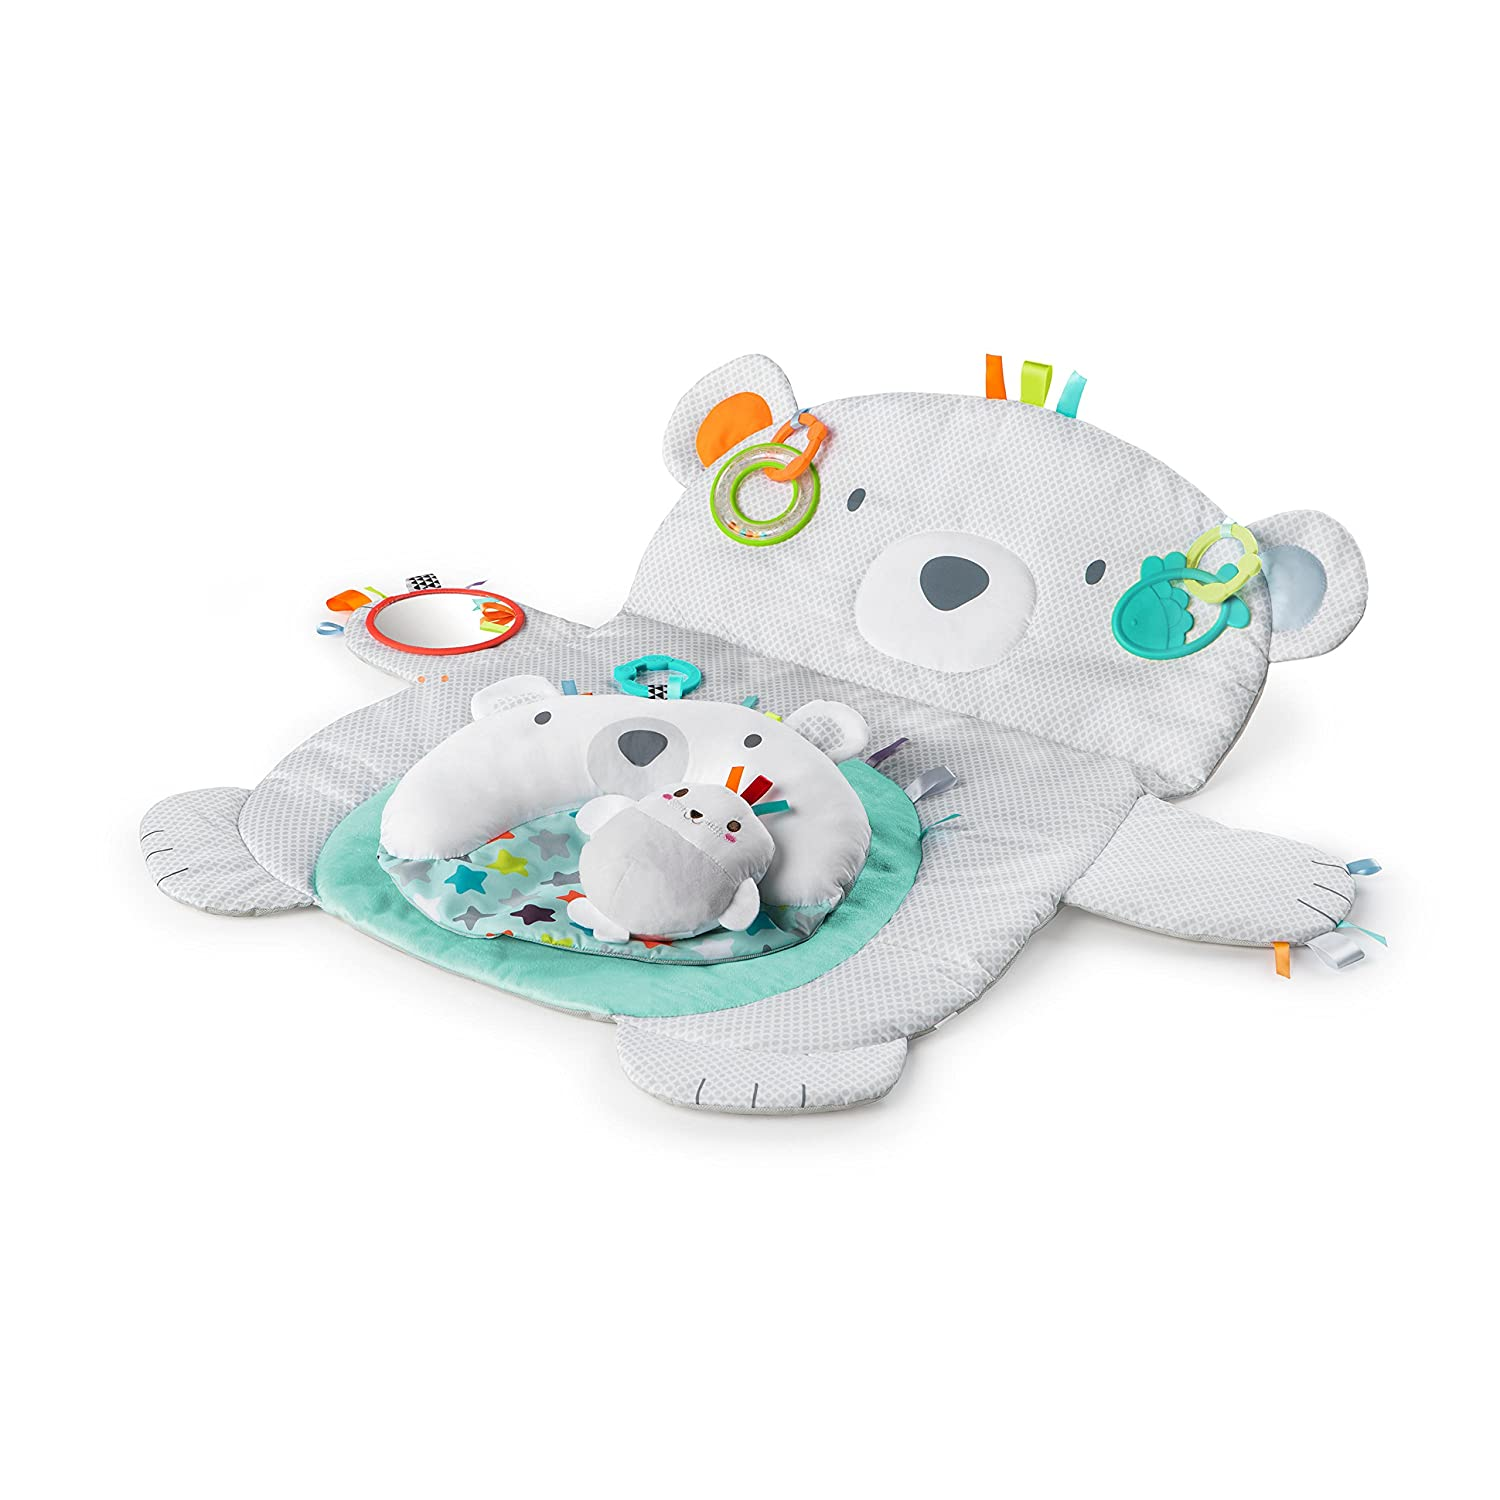 Bright Starts Tummy Time Prop & Play Kids II 10841-3